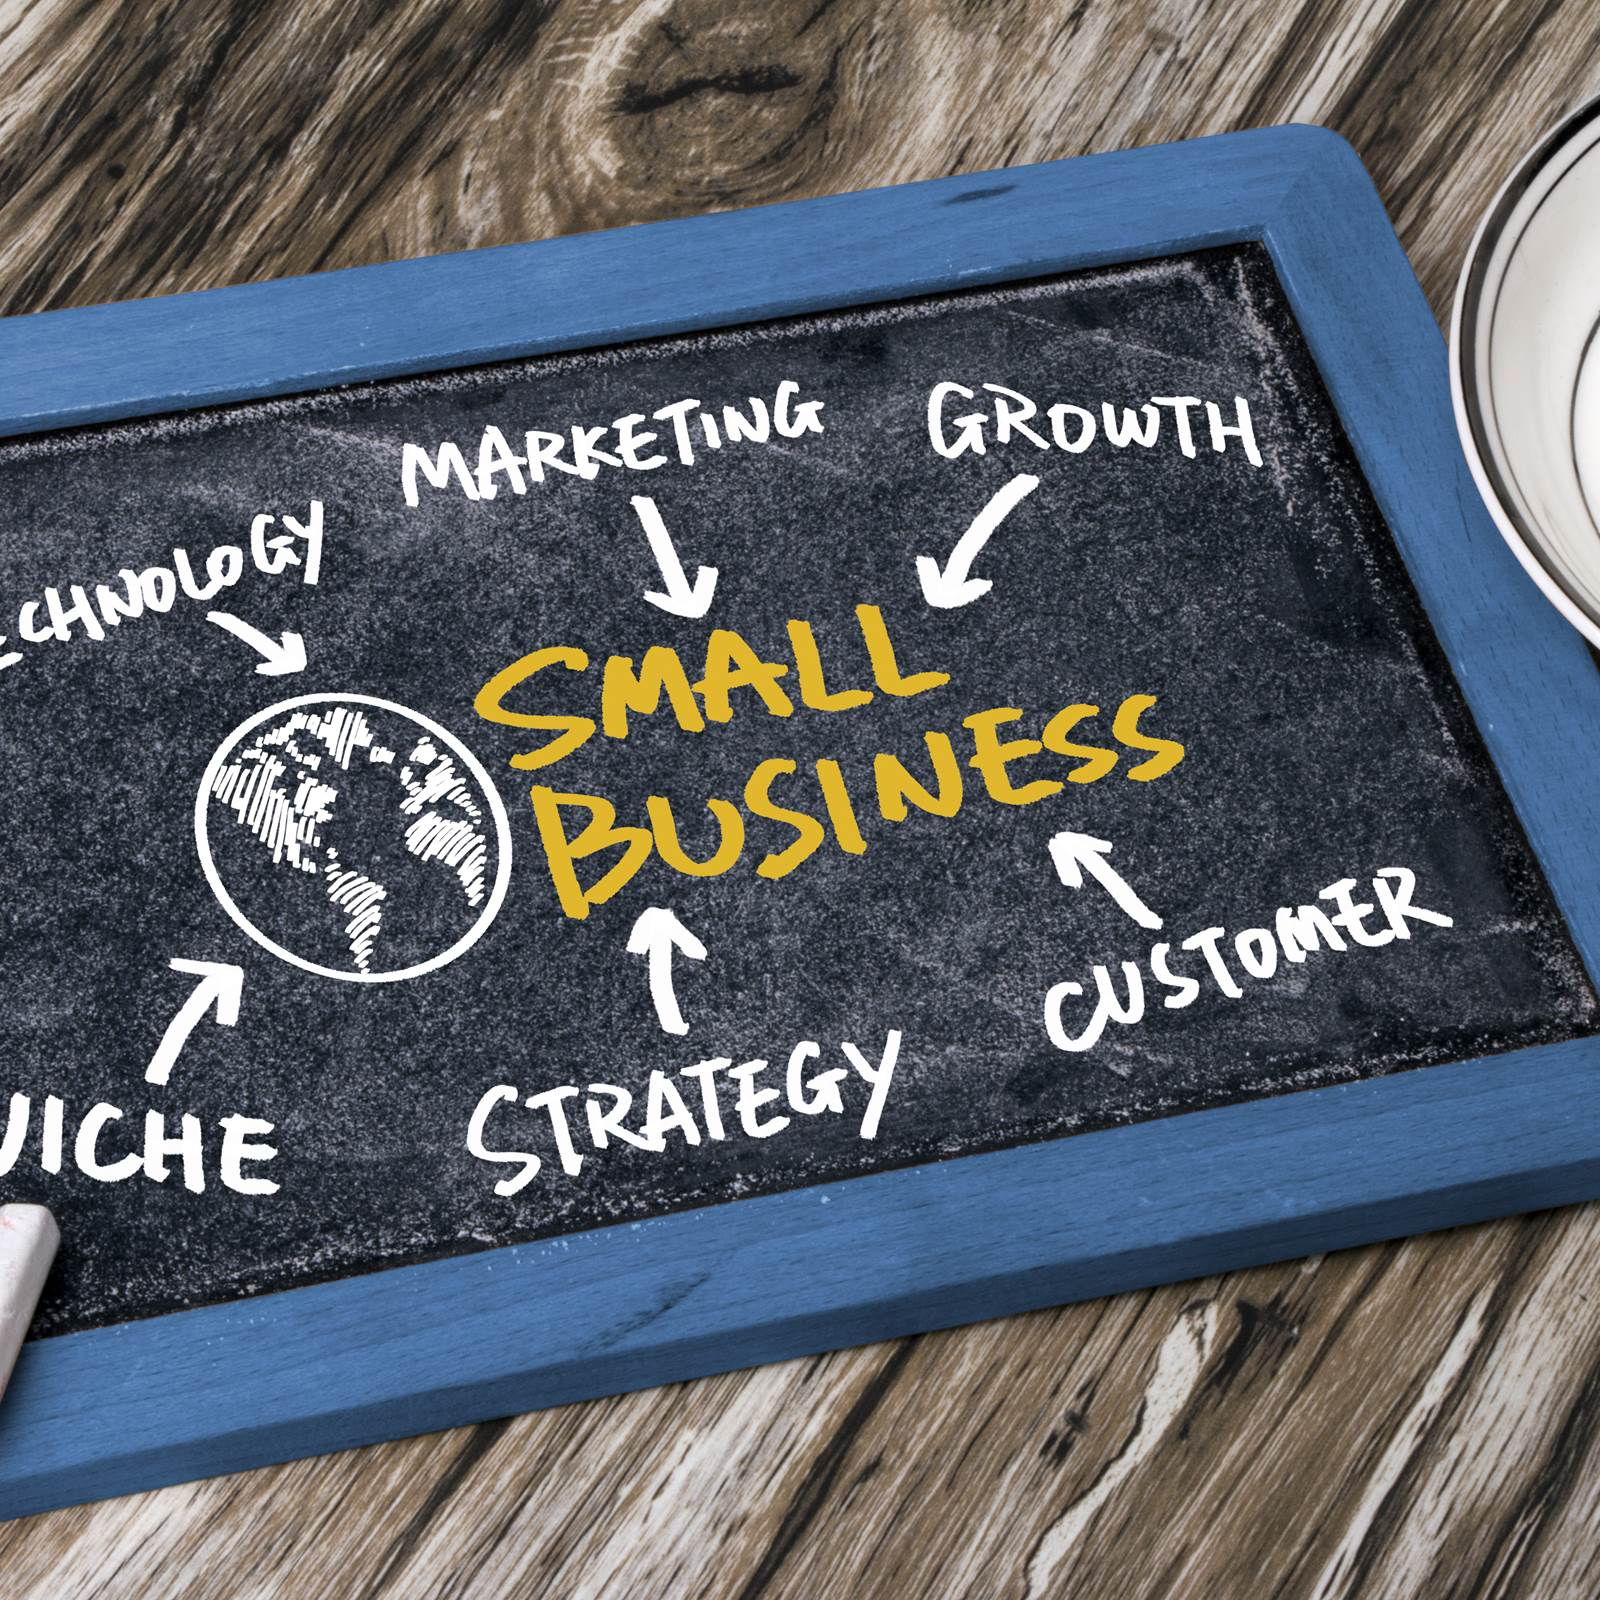 How to promote small businesses – The Bott Shoppe